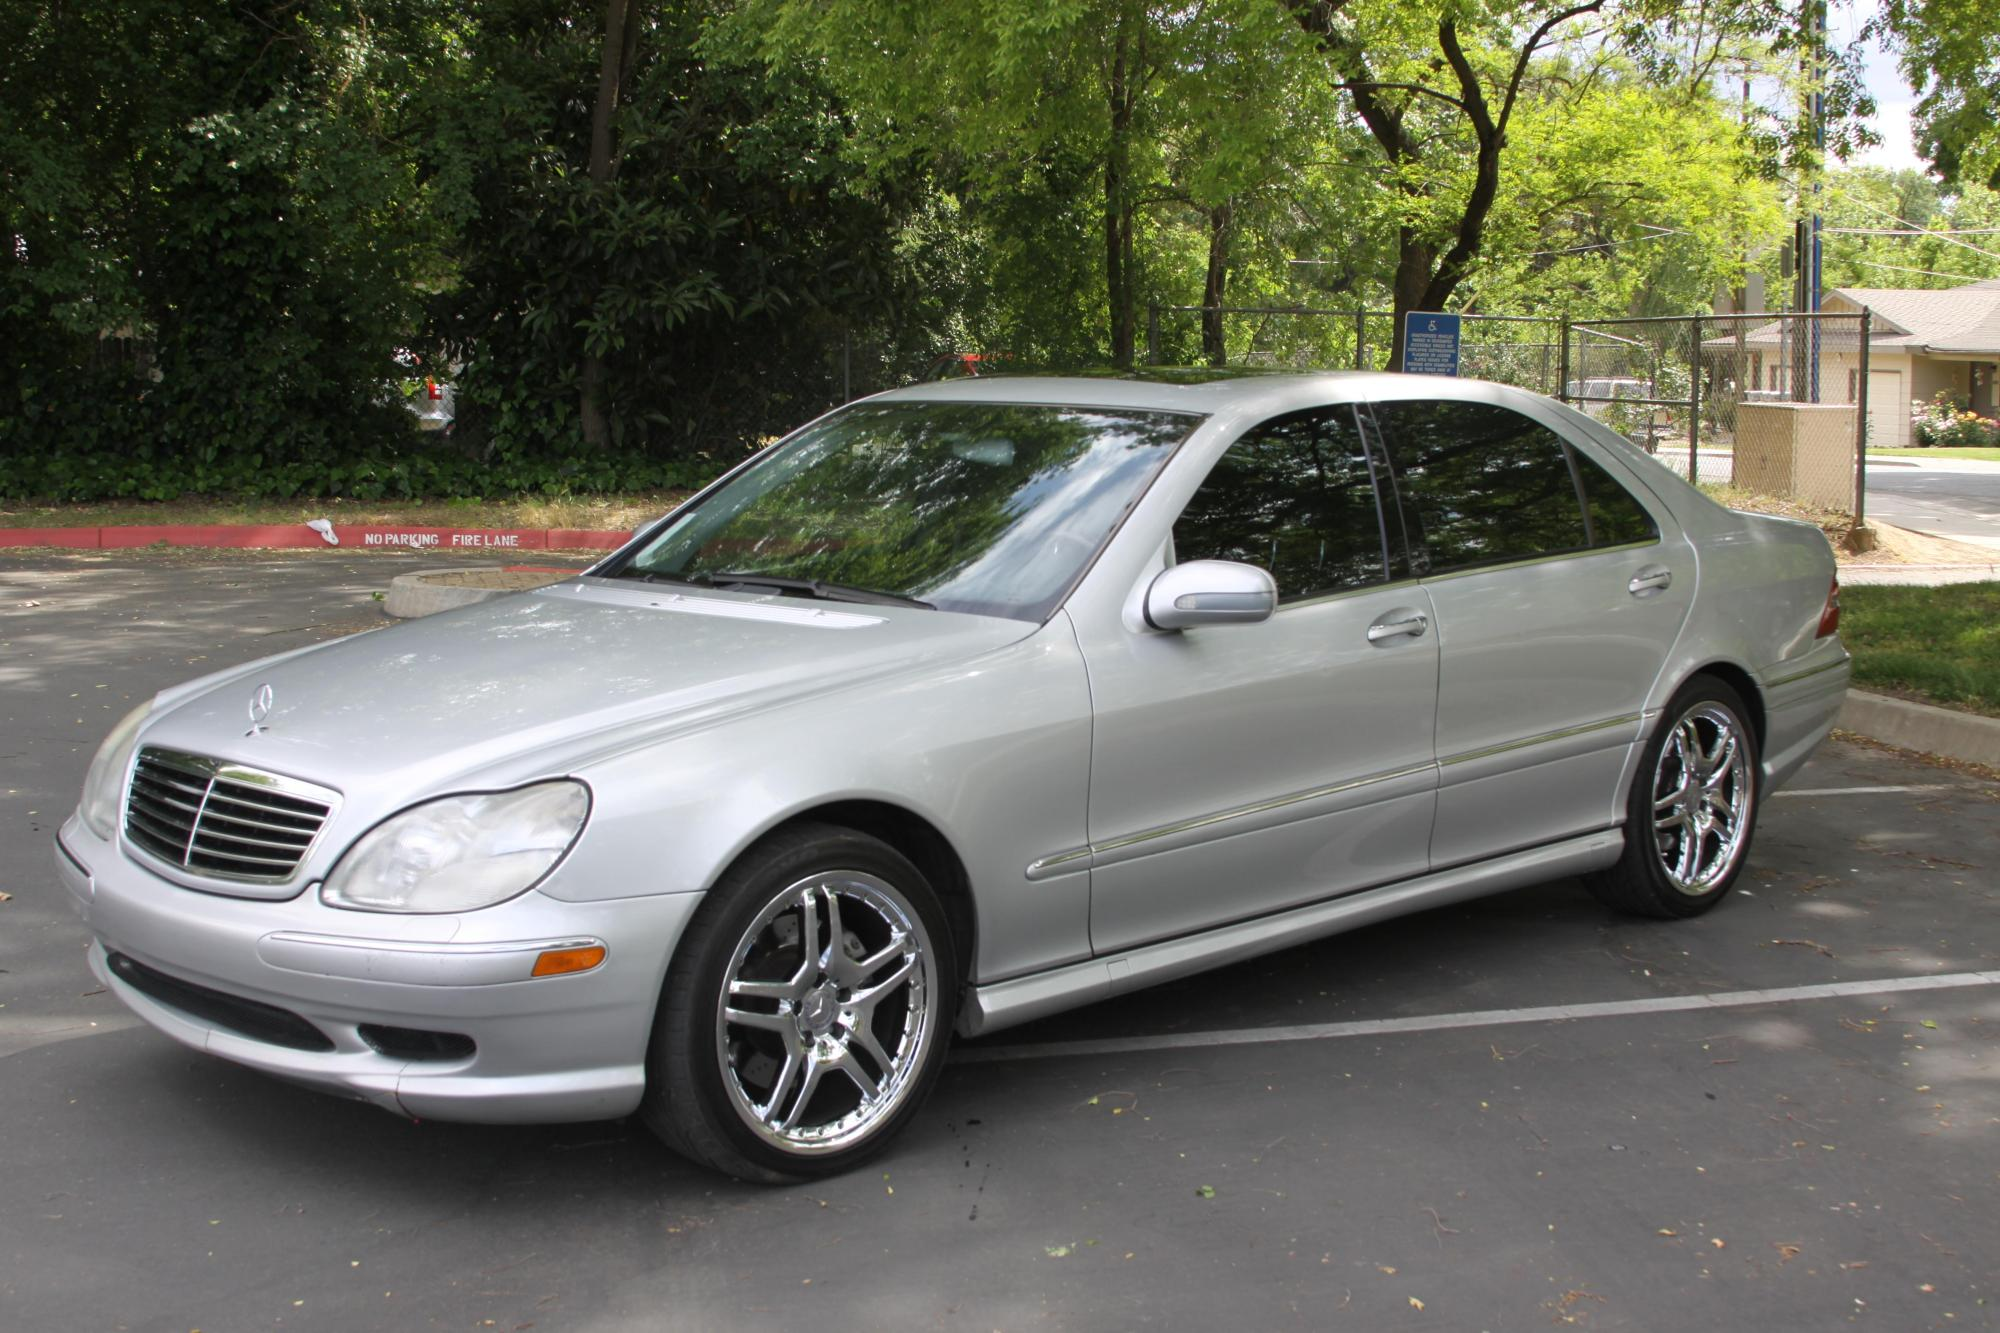 hight resolution of armen95 2002 mercedes benz s class 39239184001 original